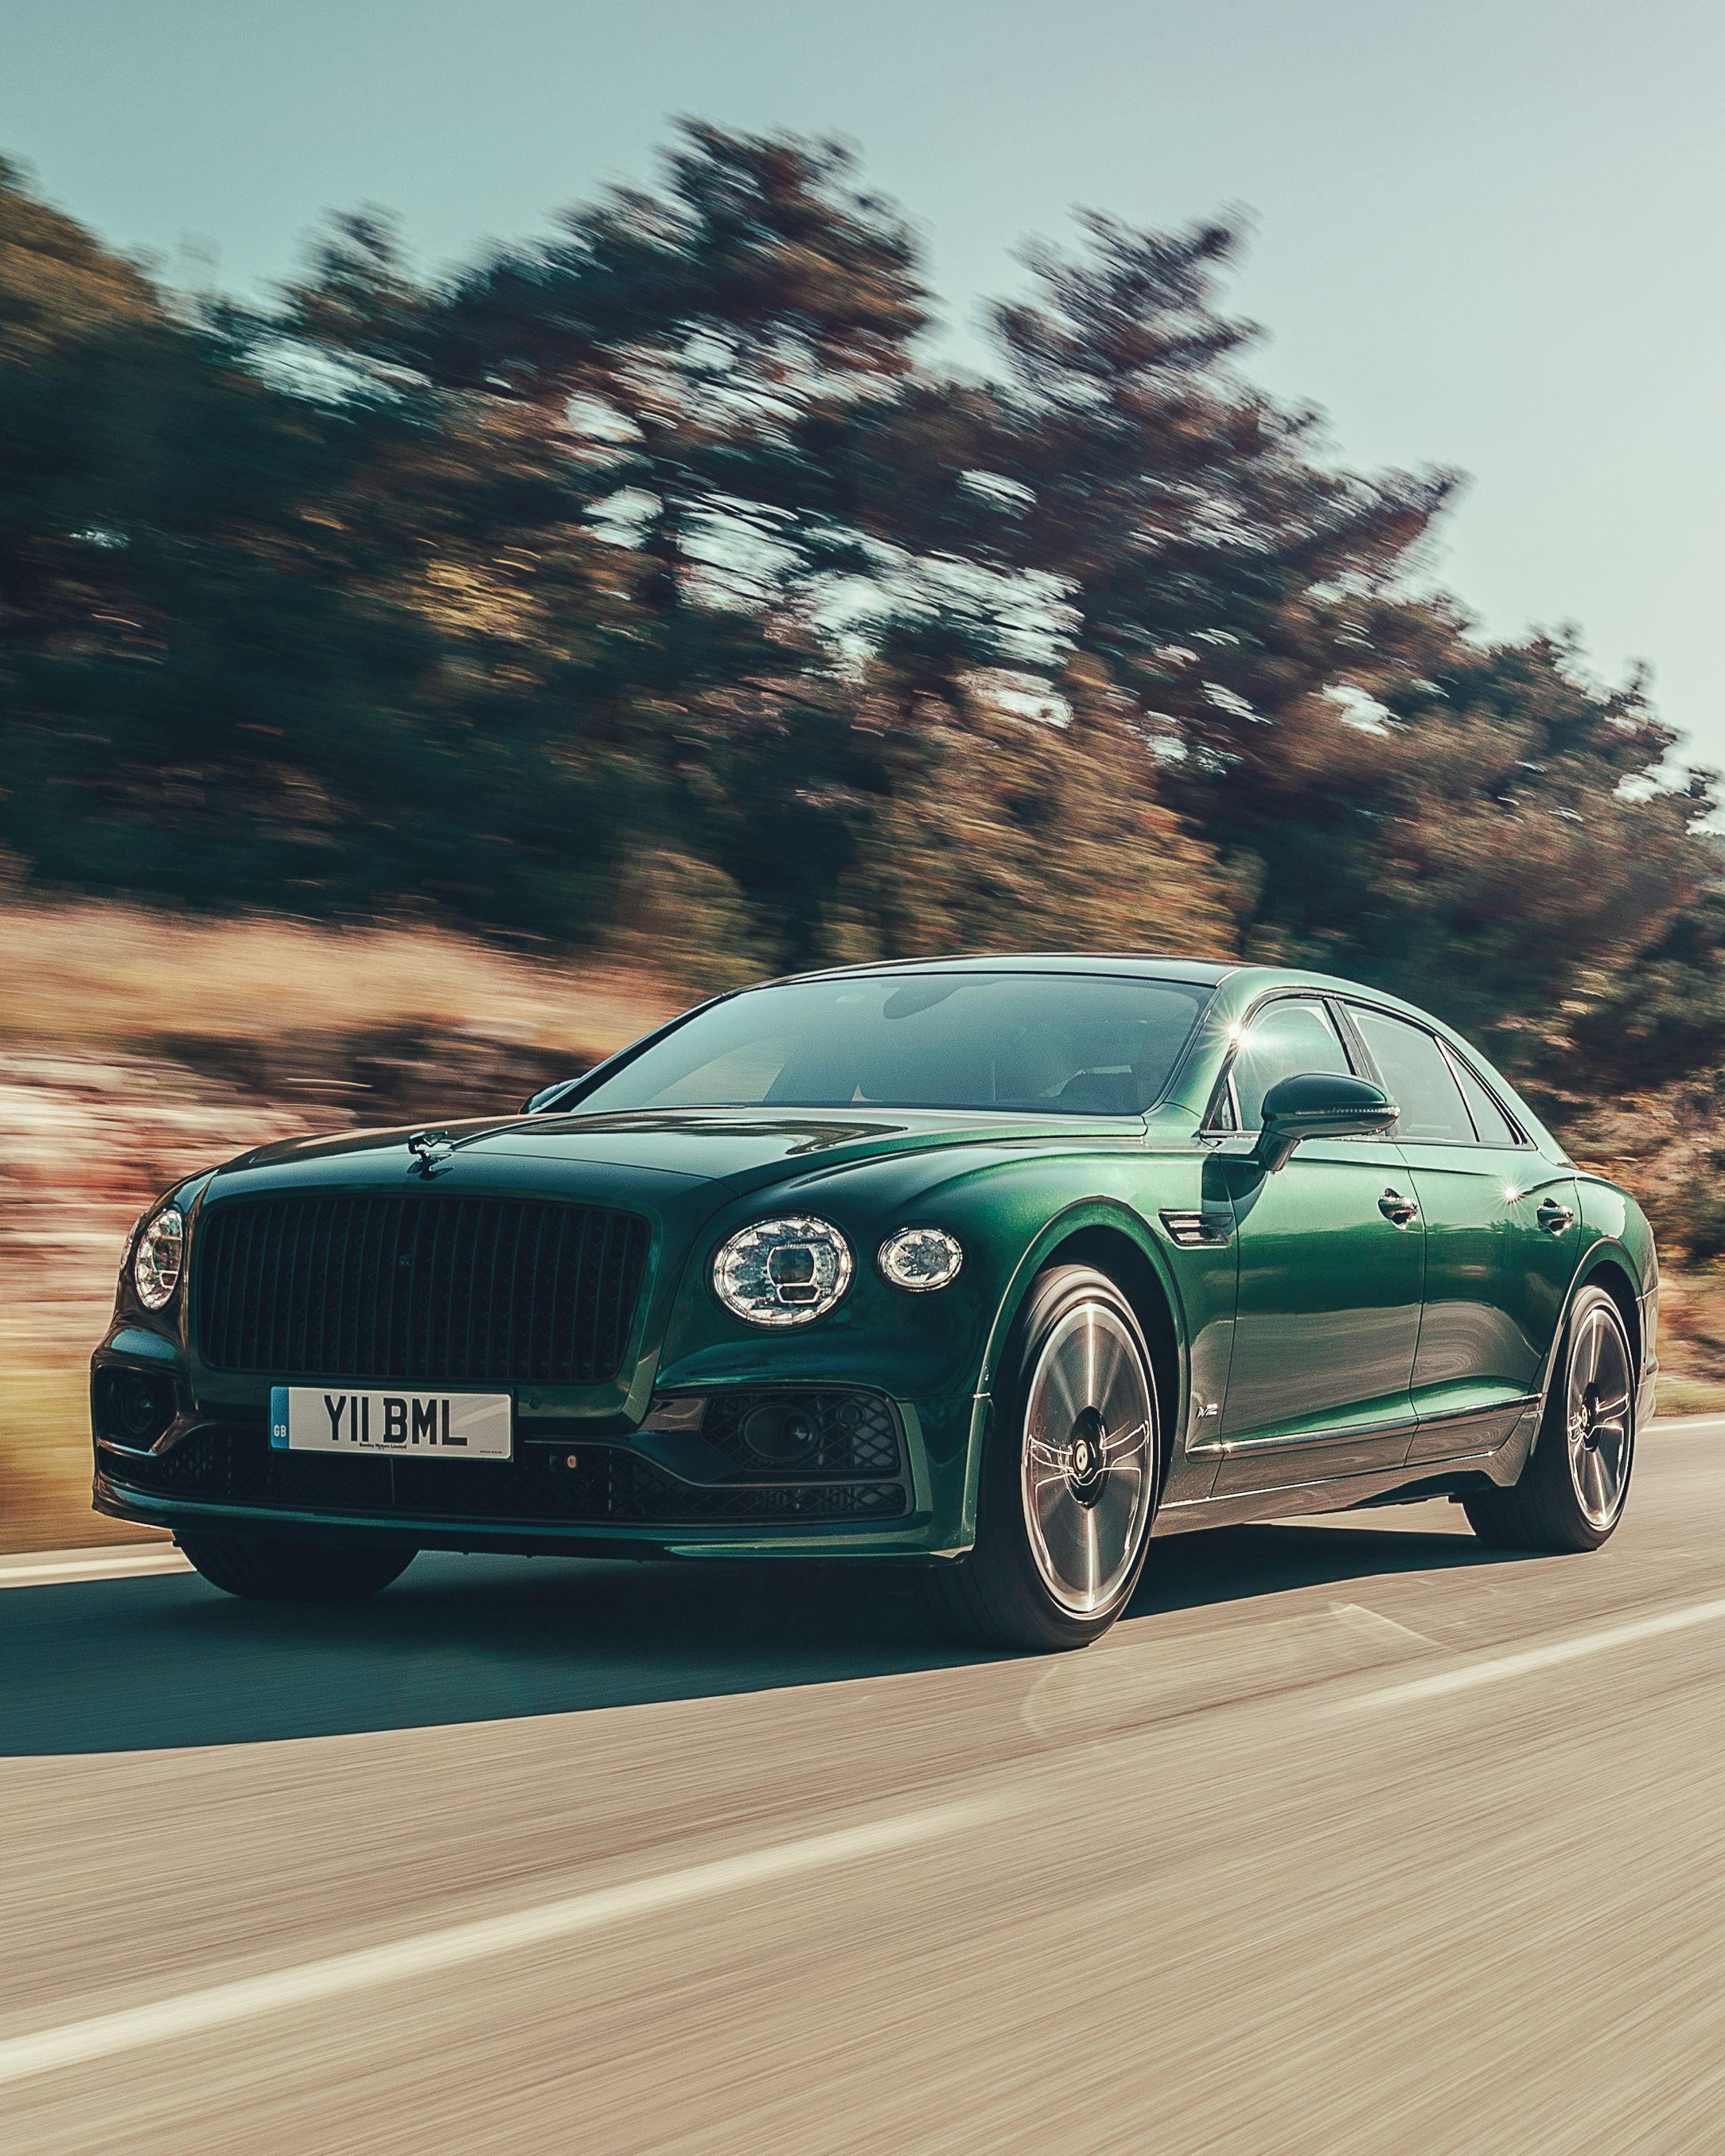 Review How The 2020 Bentley Flying Spur Is The Definitive Modern Bentley Sedan Bentley Flying Spur Flying Spur Bentley